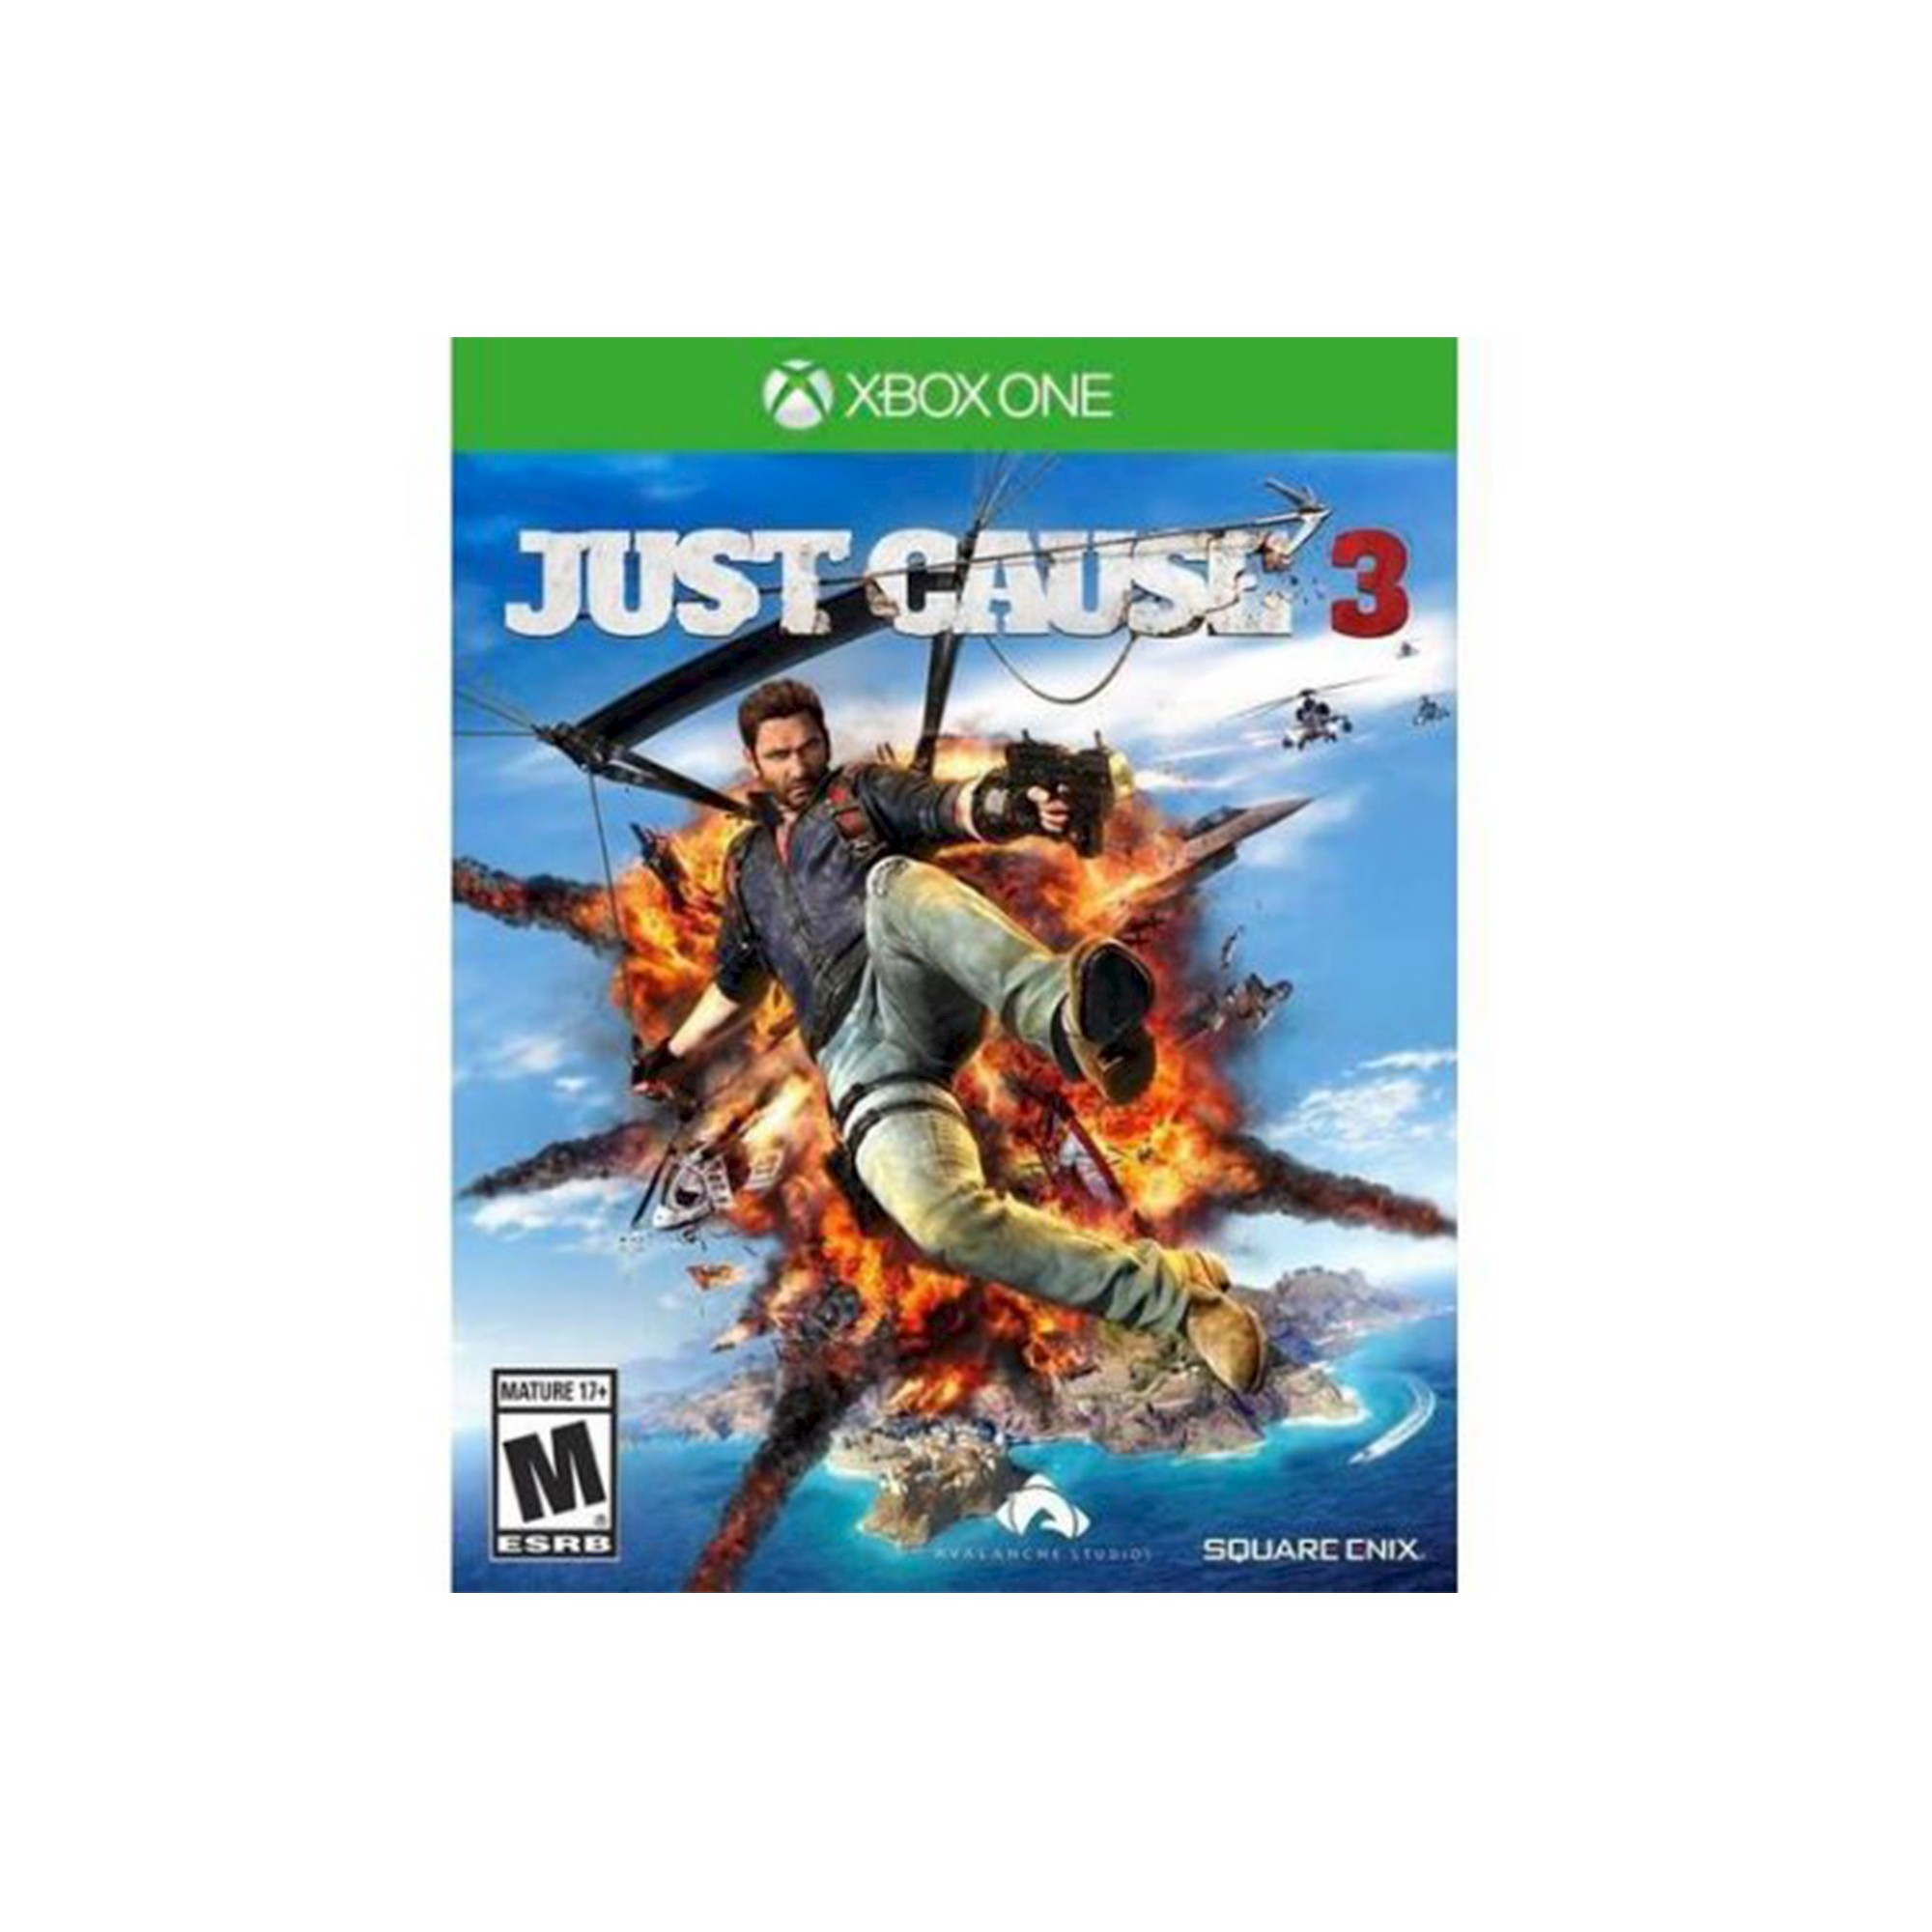 Just Cause 3 Xbox One Video Games Just Cause 3 Ps4 Games Games